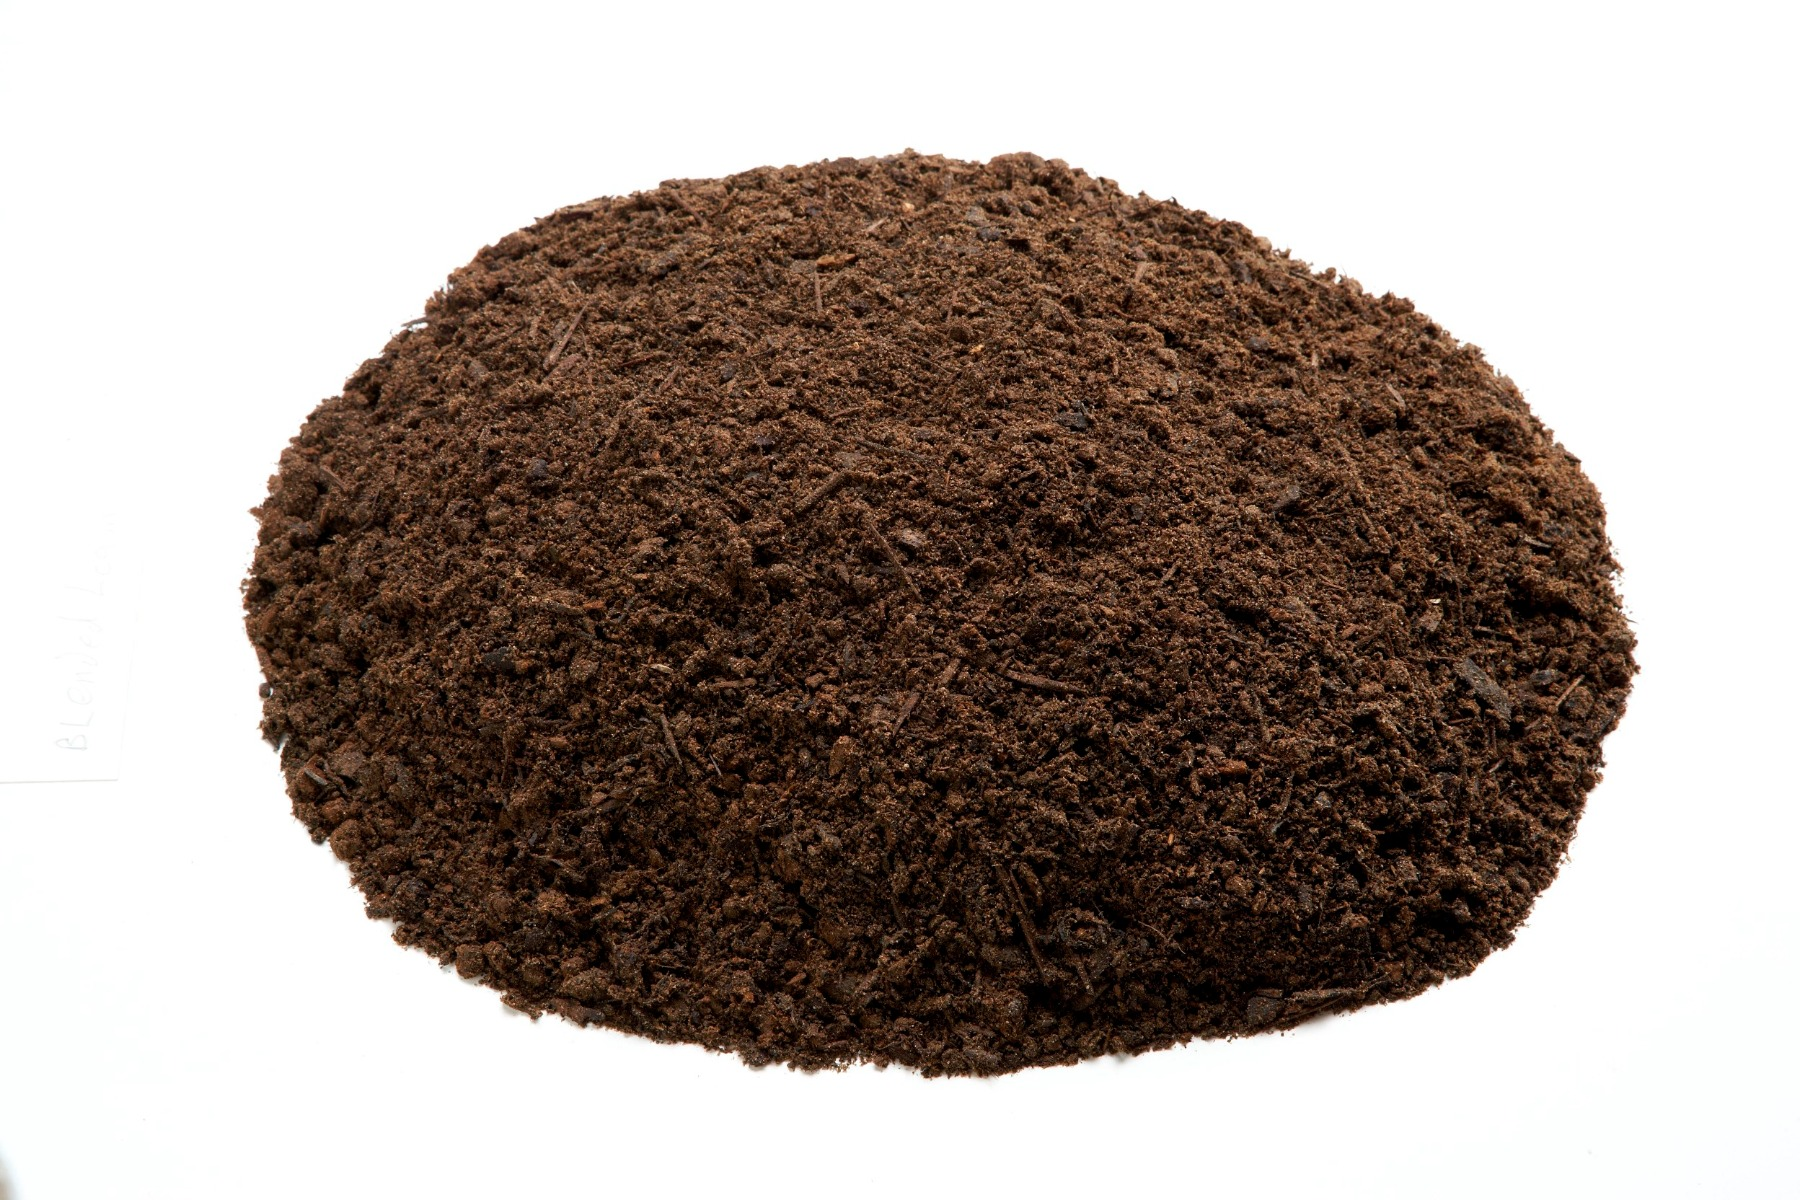 Which is the best soil for growing plants: sand, clay or